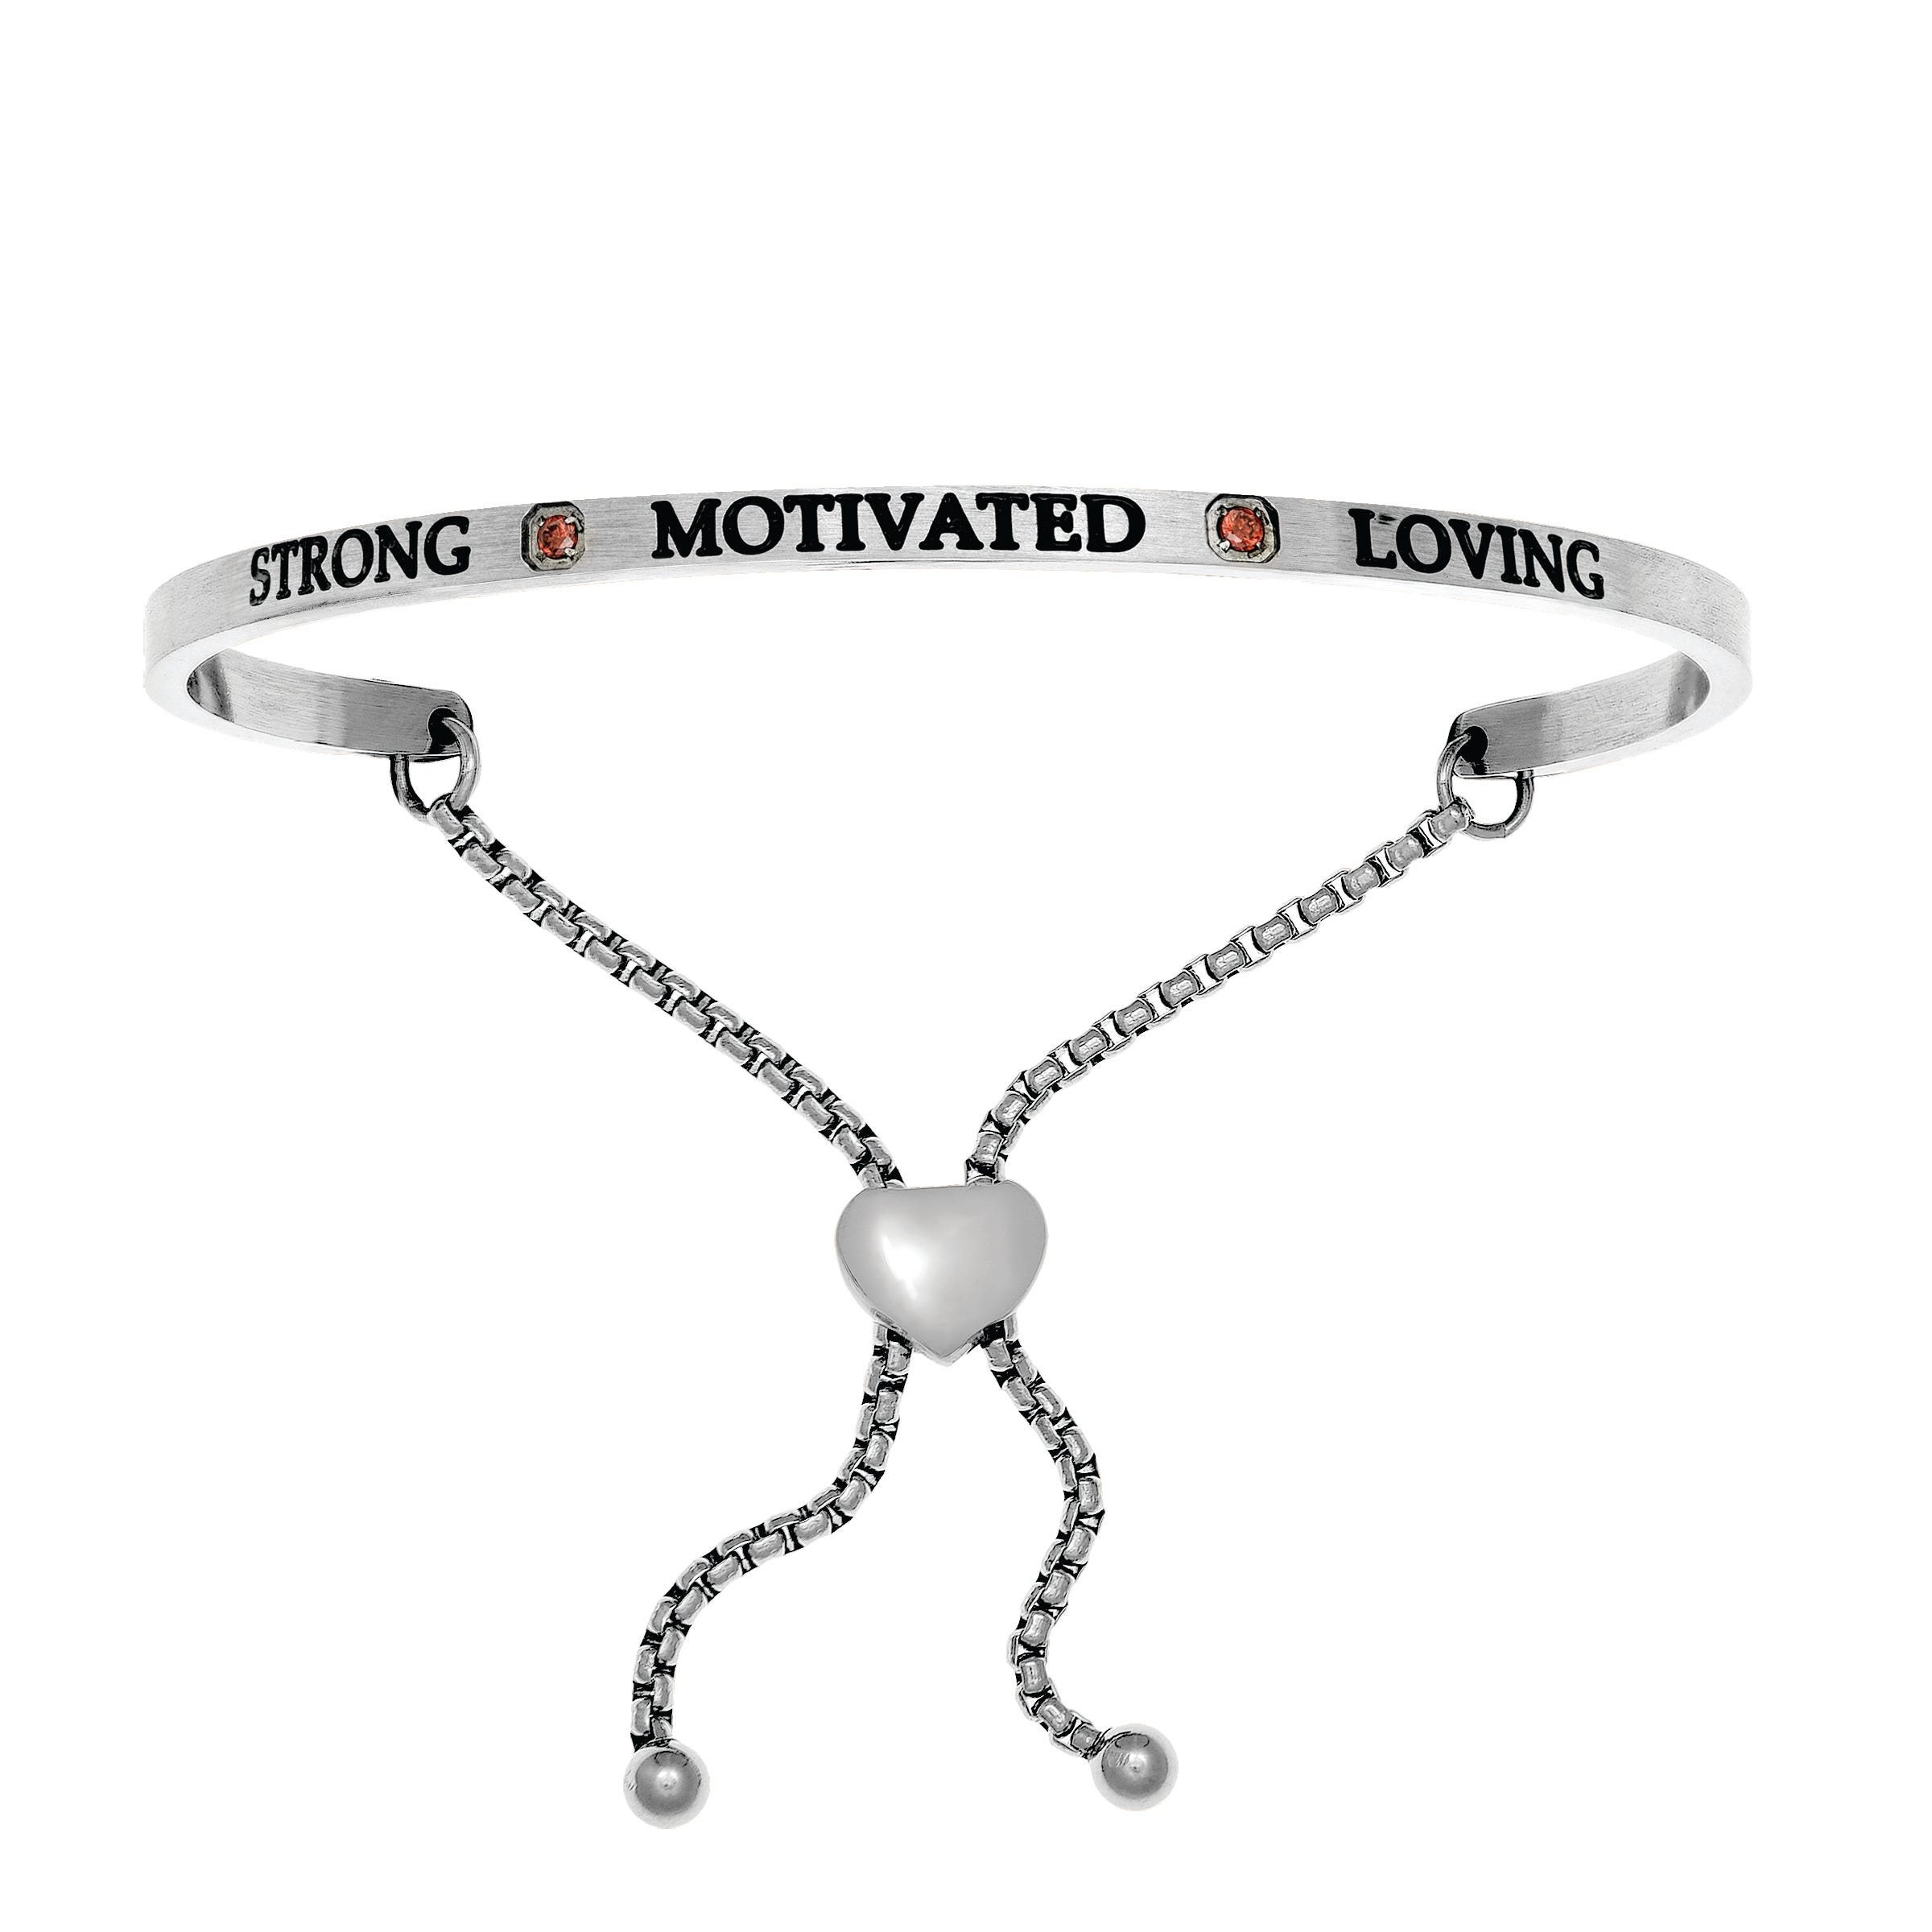 Strong & Motivated January. Intuitions Bolo Bracelet in White Stainless Steel